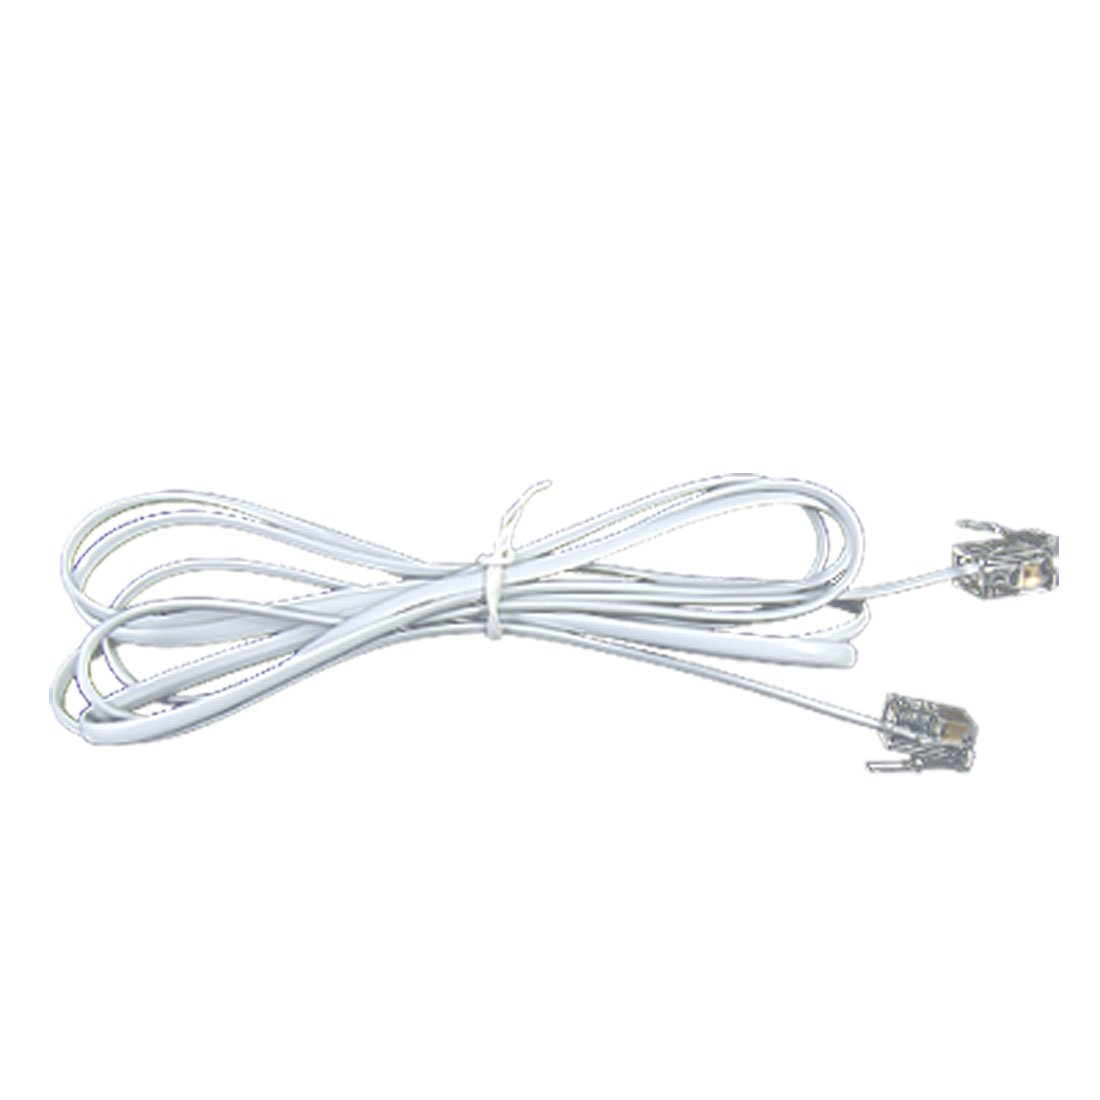 4 8ft Rj11 To Rj11 Male To Male Telephone Cable Connector